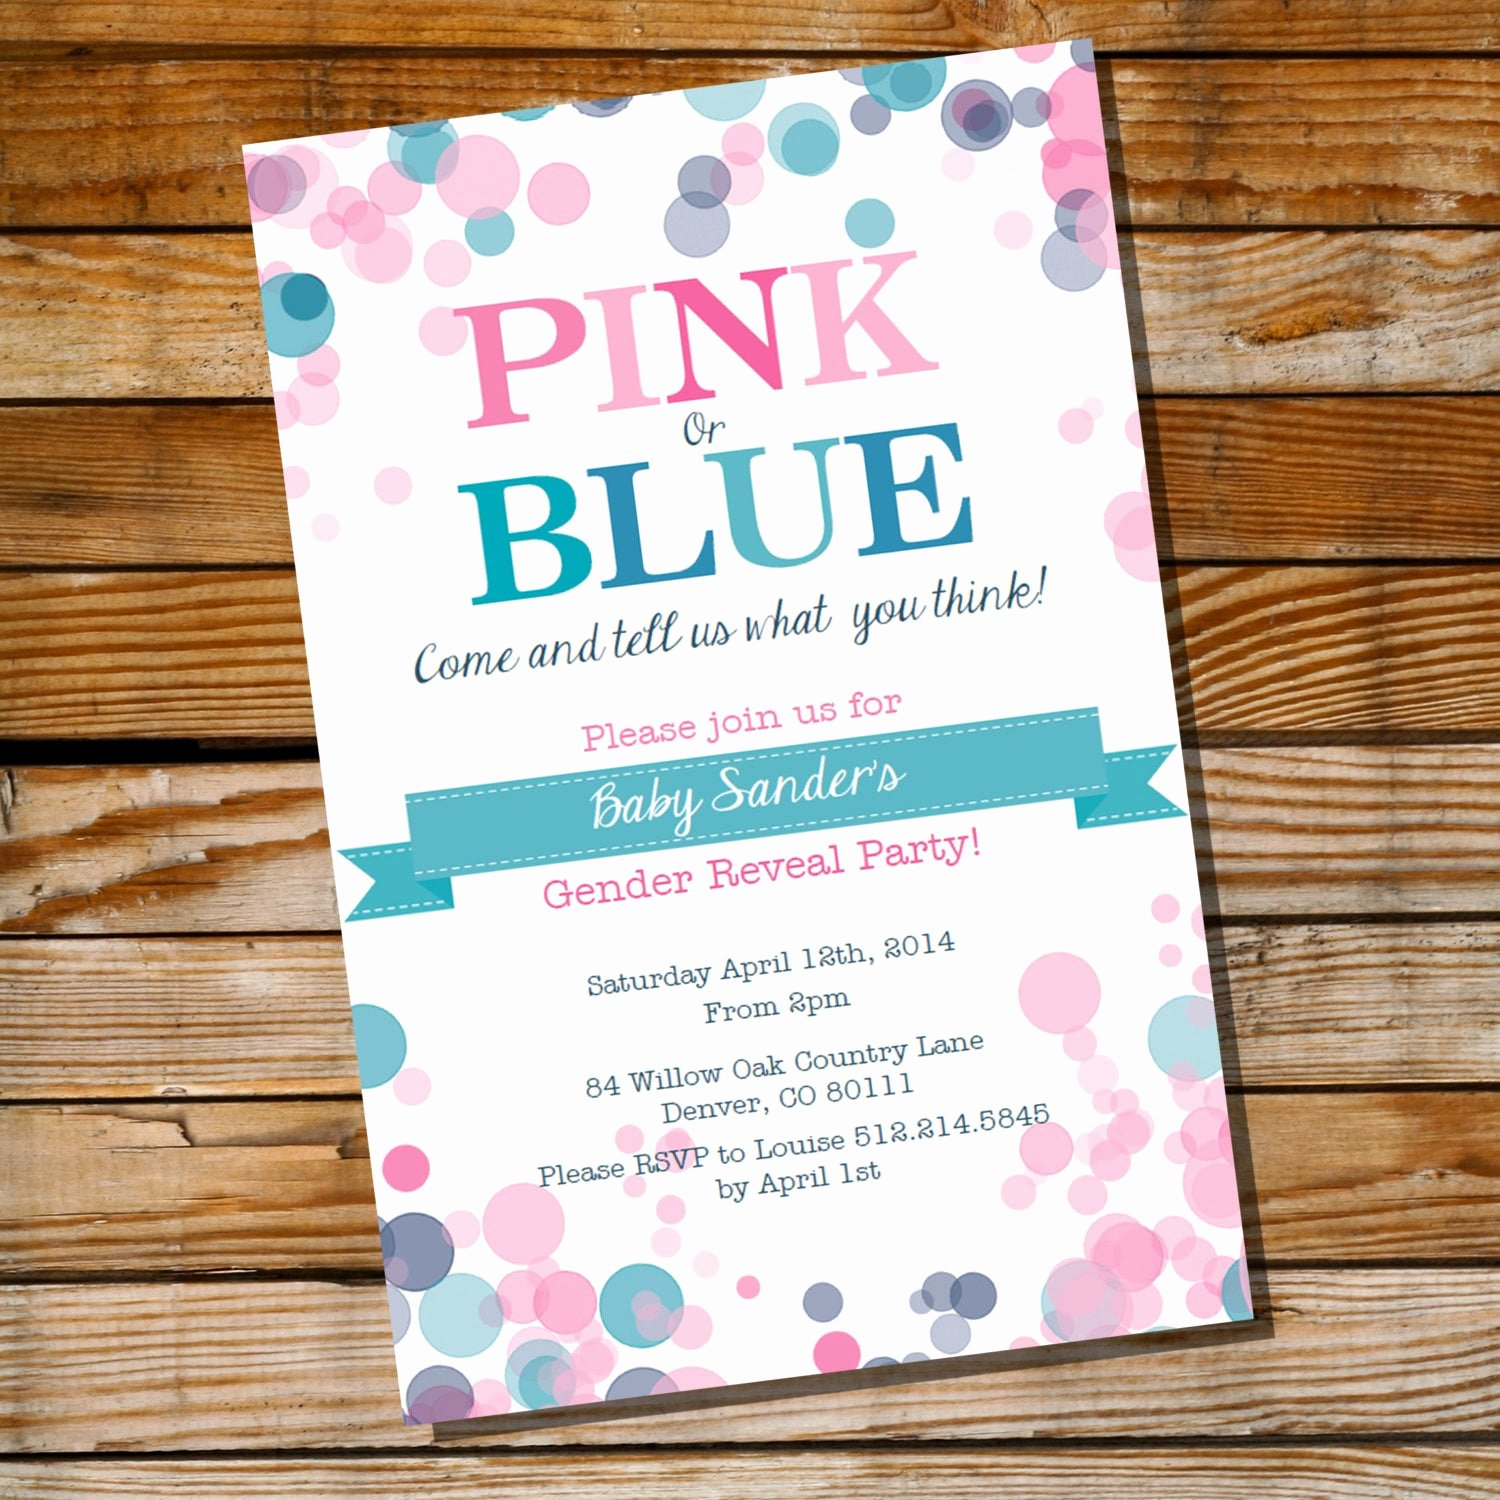 Gender Reveal Party Invitation Wording Fresh Gender Reveal Party Invitation Pink or Blue Instantly